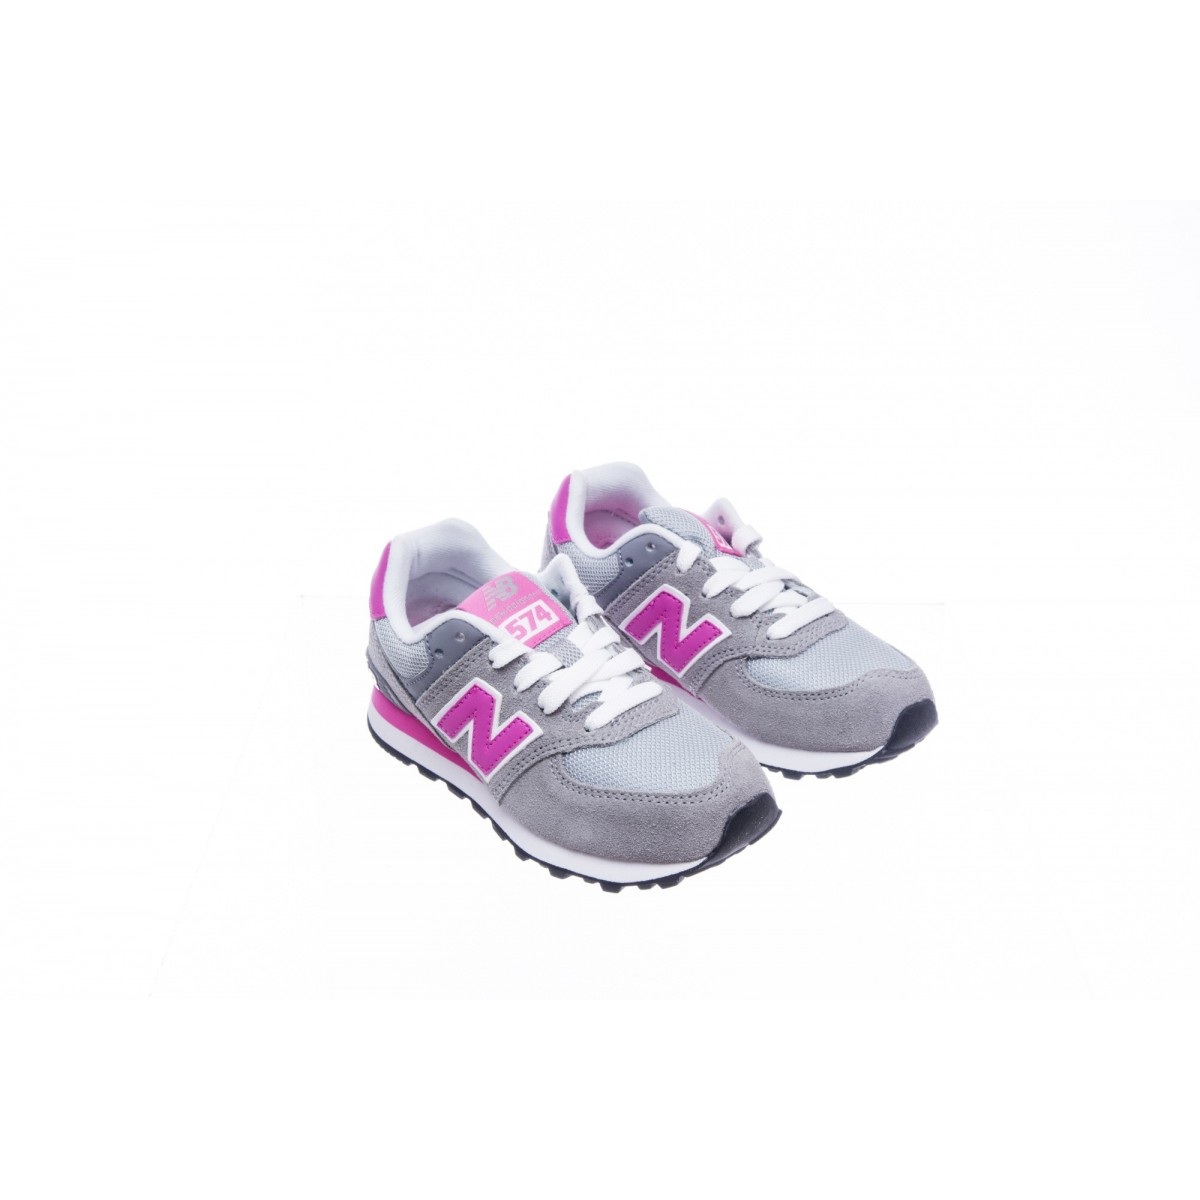 Scarpa New balance - Kl574 lacci girls